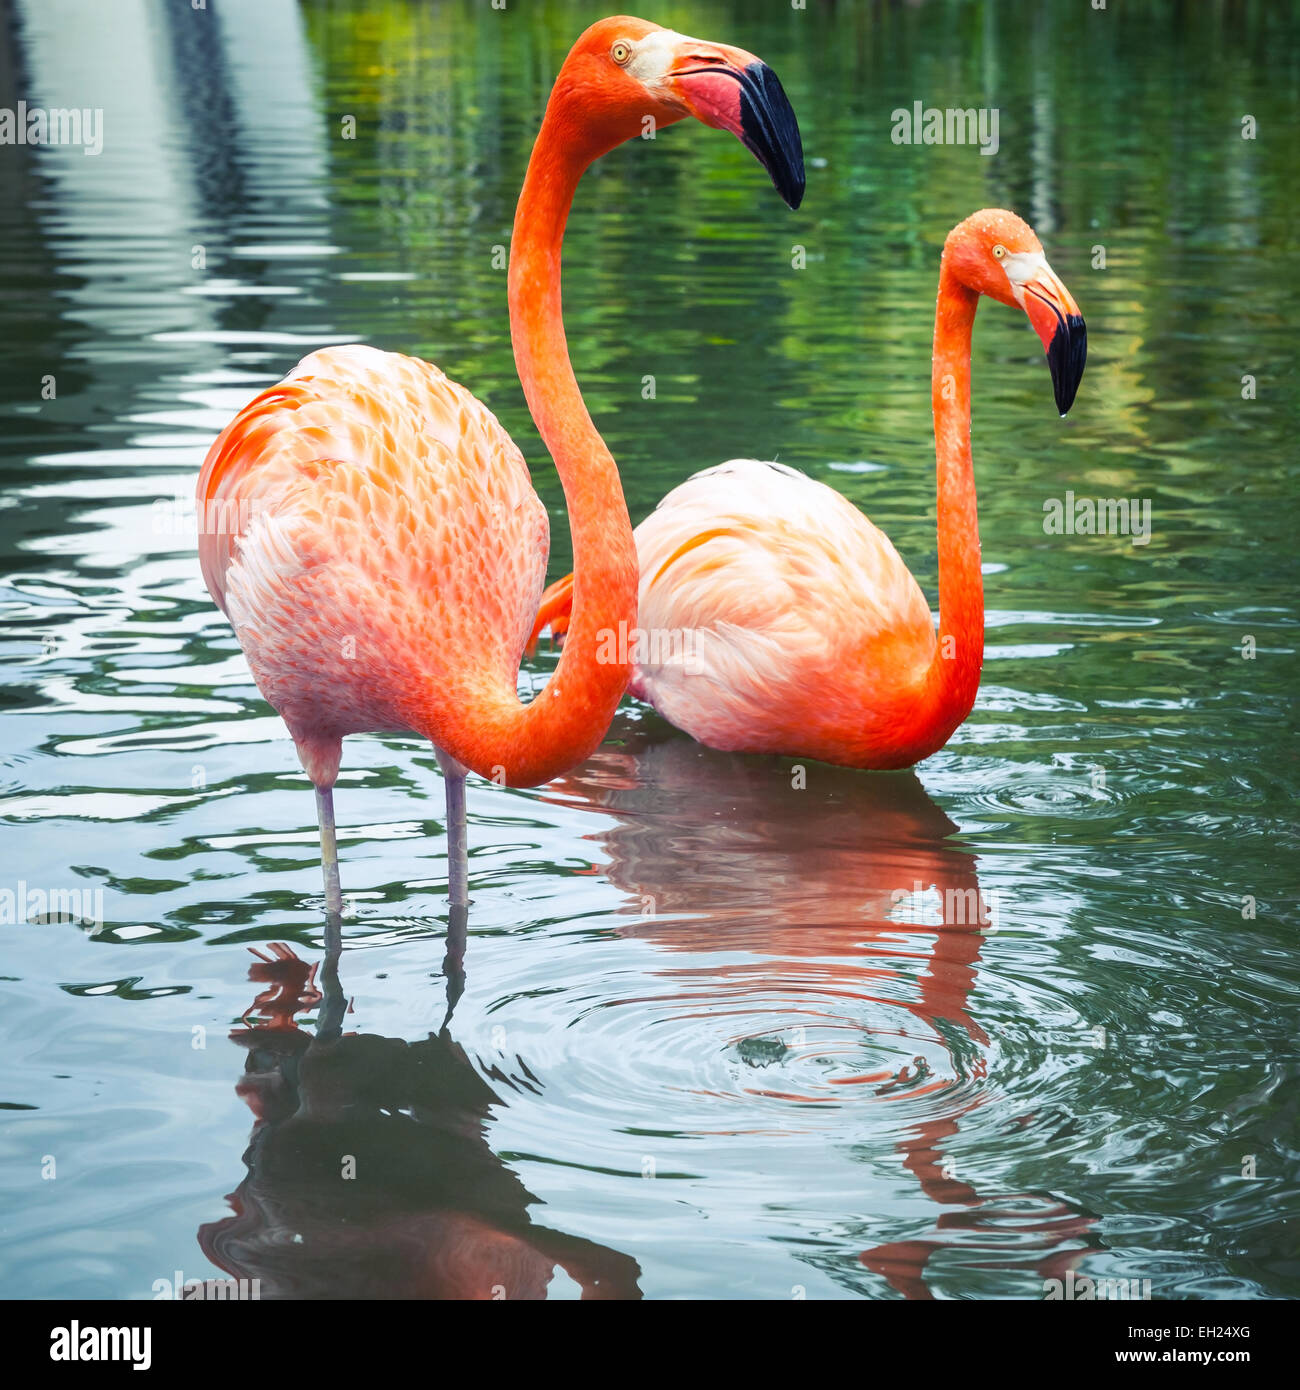 Two pink flamingos walking in the water with reflections Stock Photo